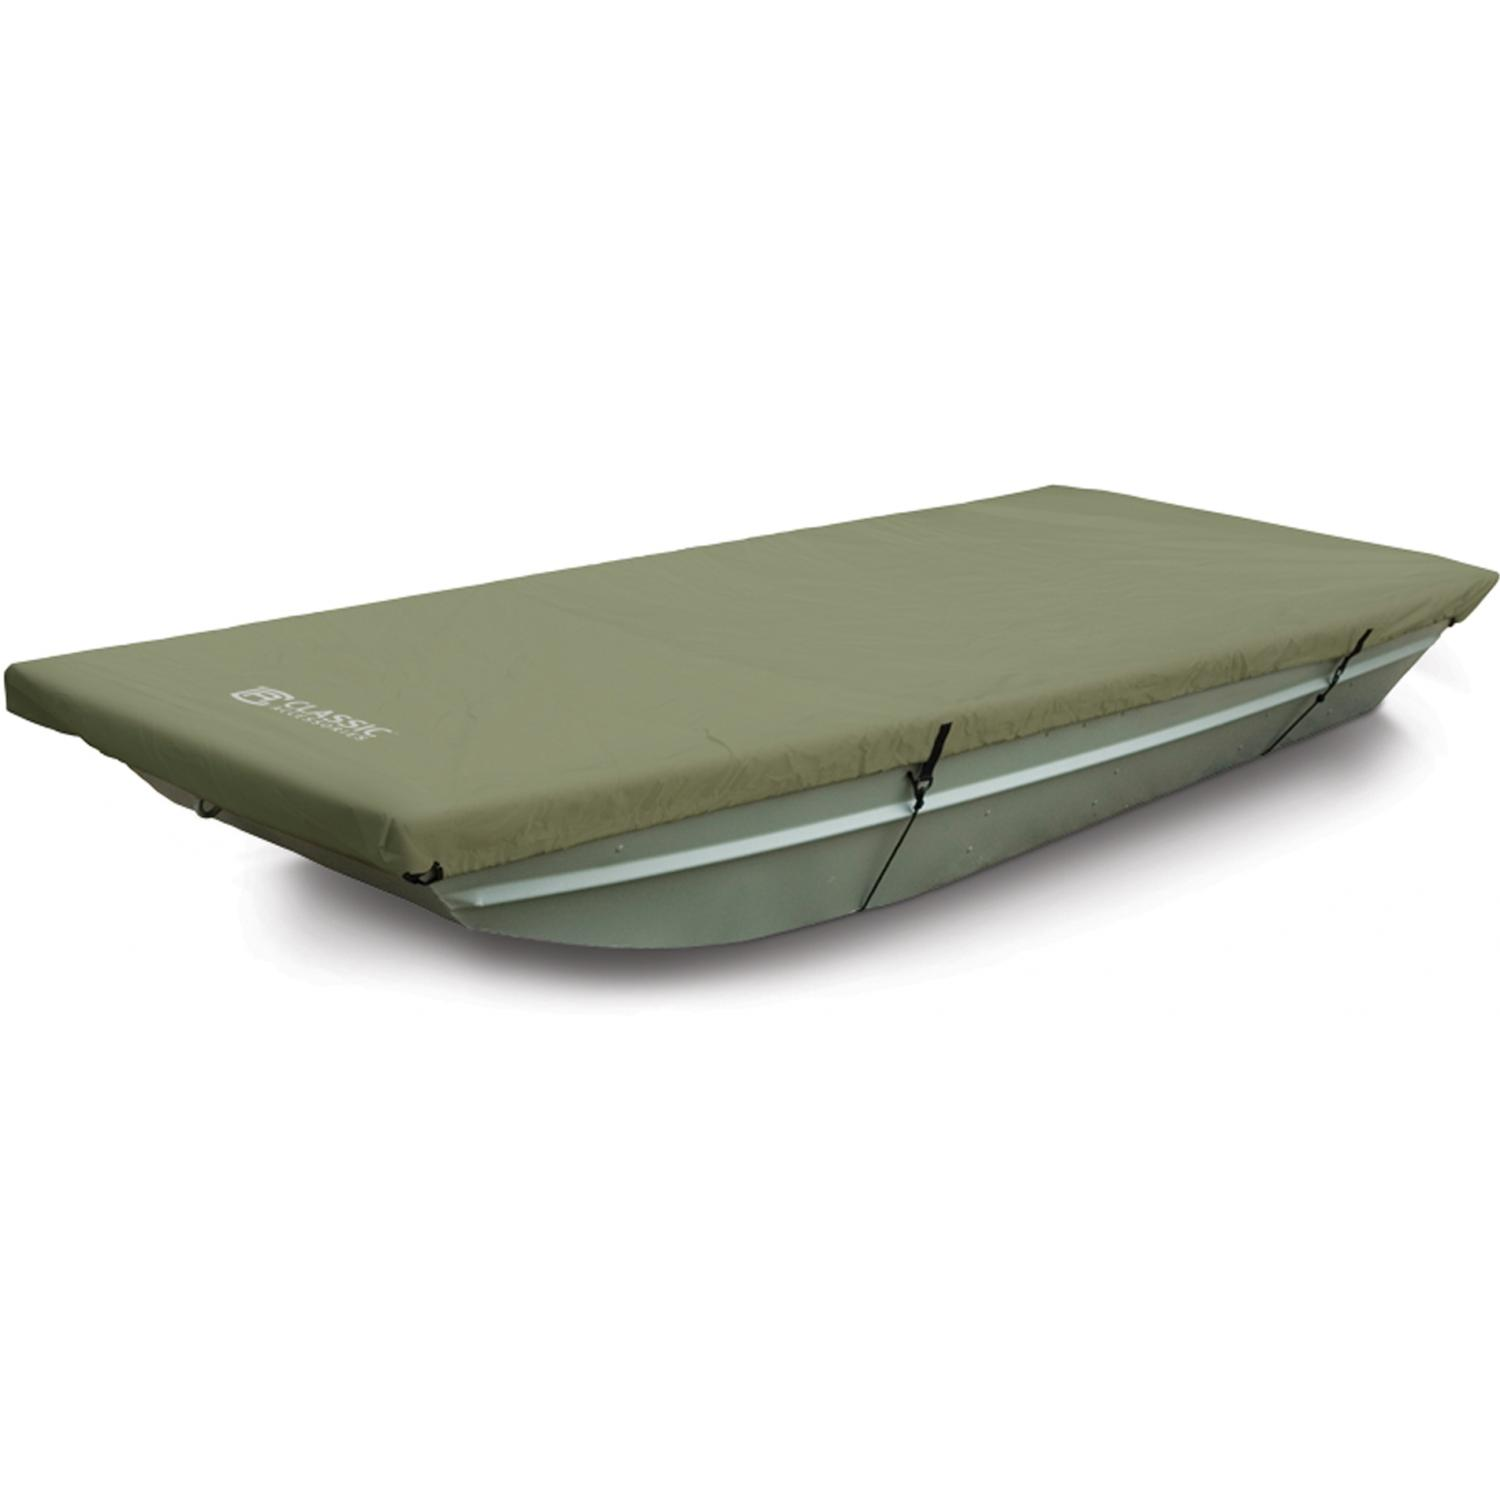 Buy discount boating accessories - Classic Accessories Jon Boat Cover Olive 14 Foot